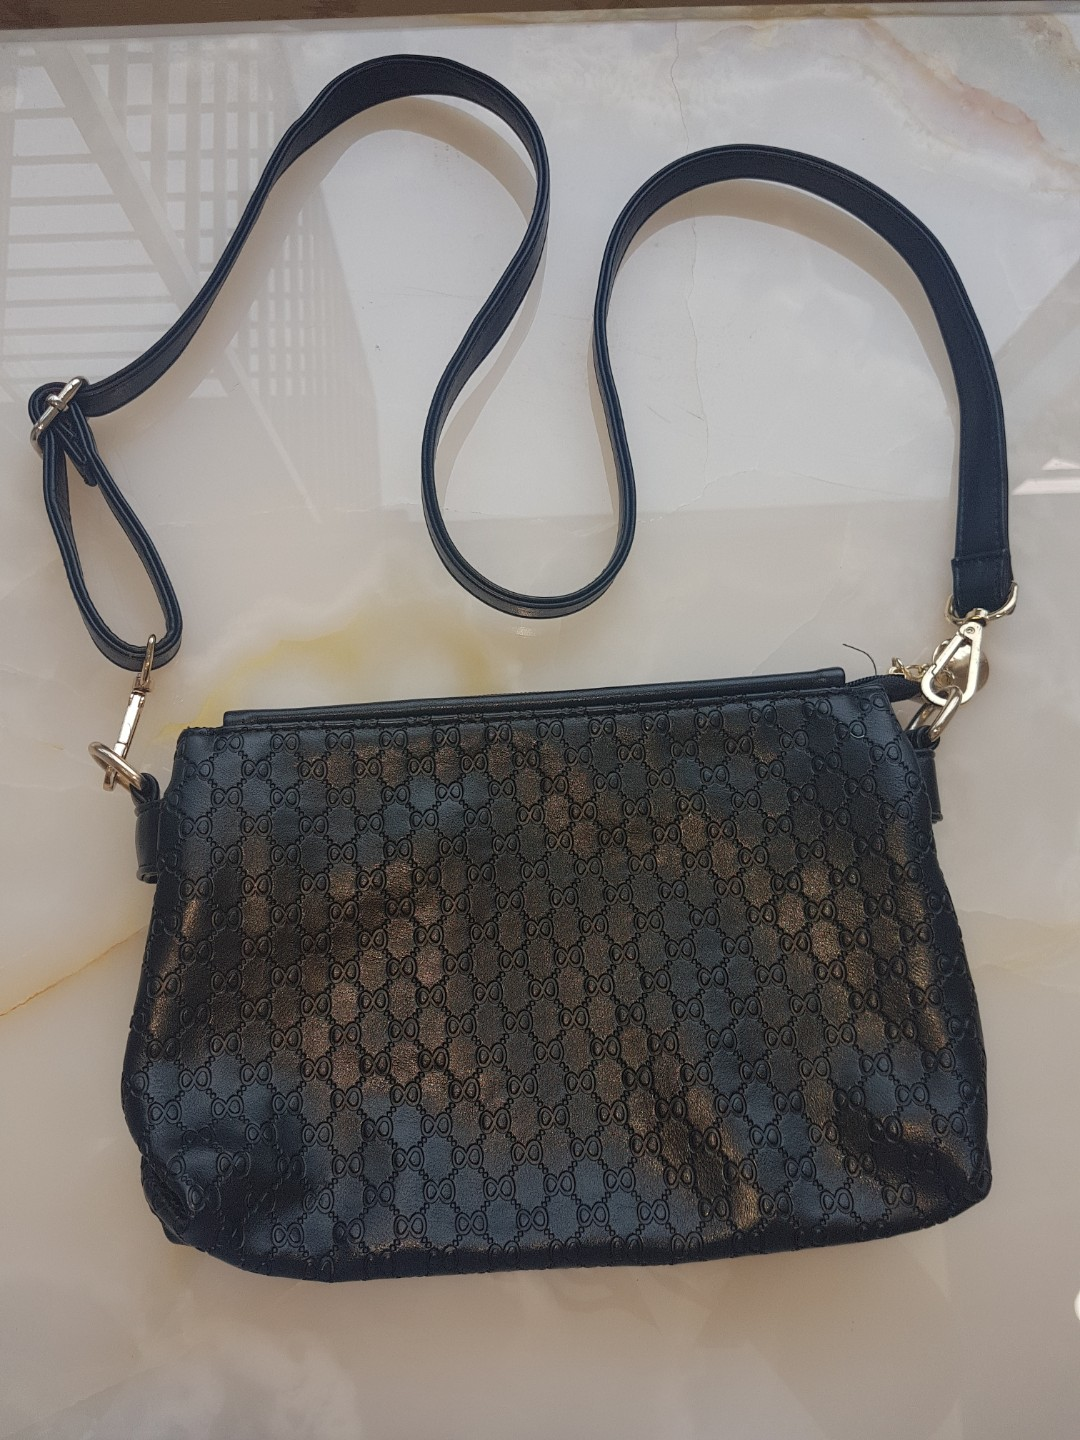 08e799188 Gucci inspired bag, Women's Fashion, Bags & Wallets on Carousell